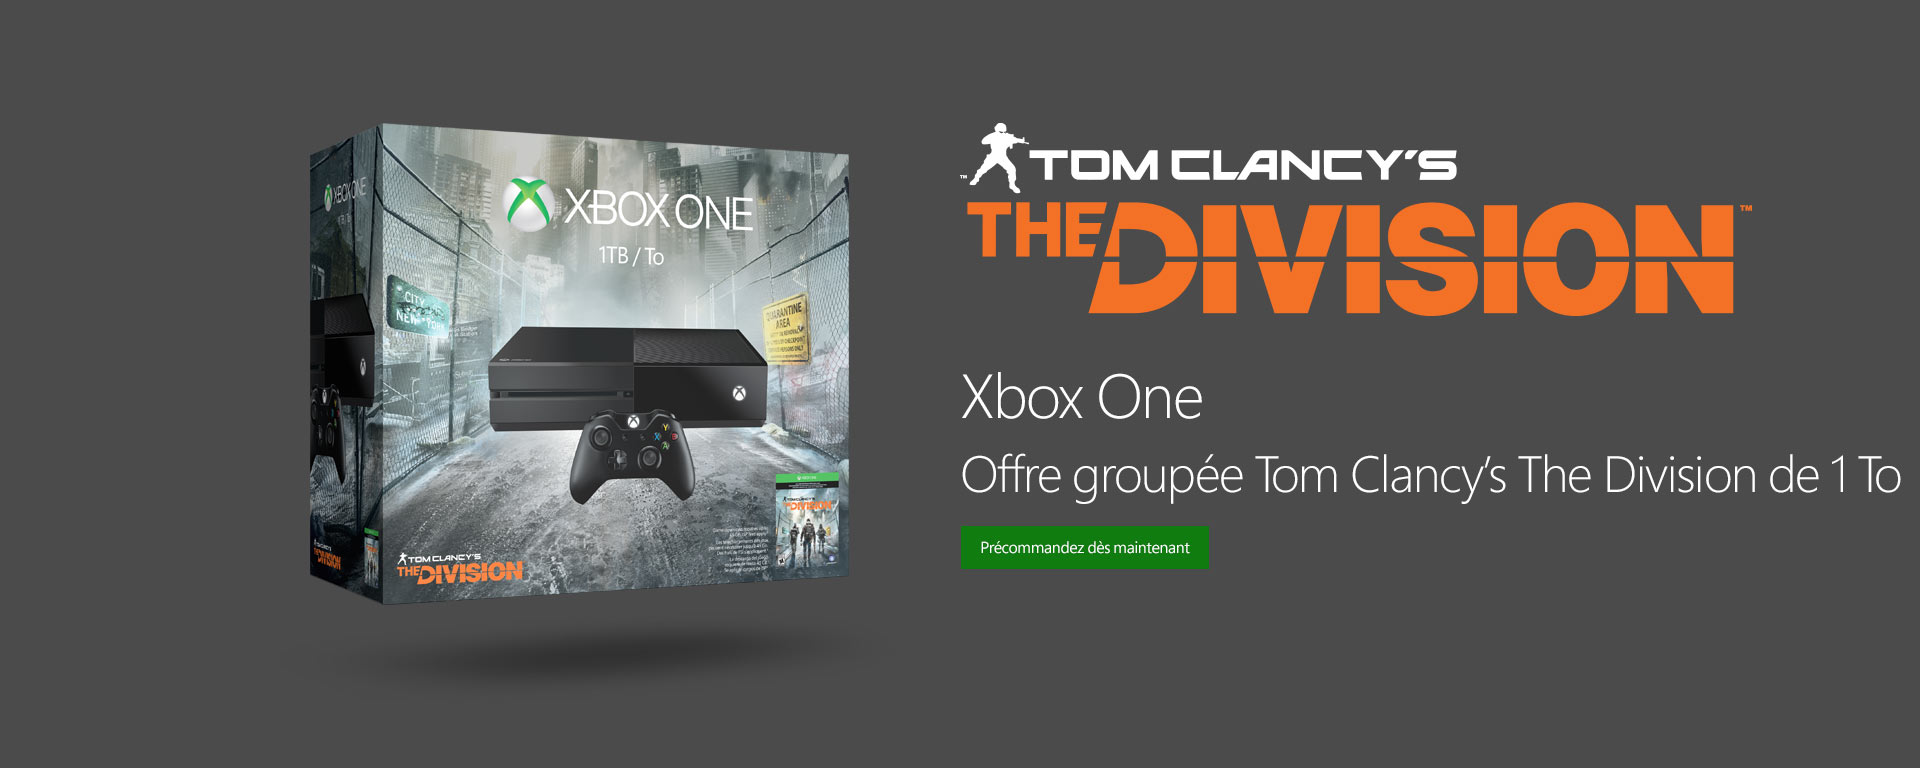 Offre groupée Tom Clancy's The Division de 1 To